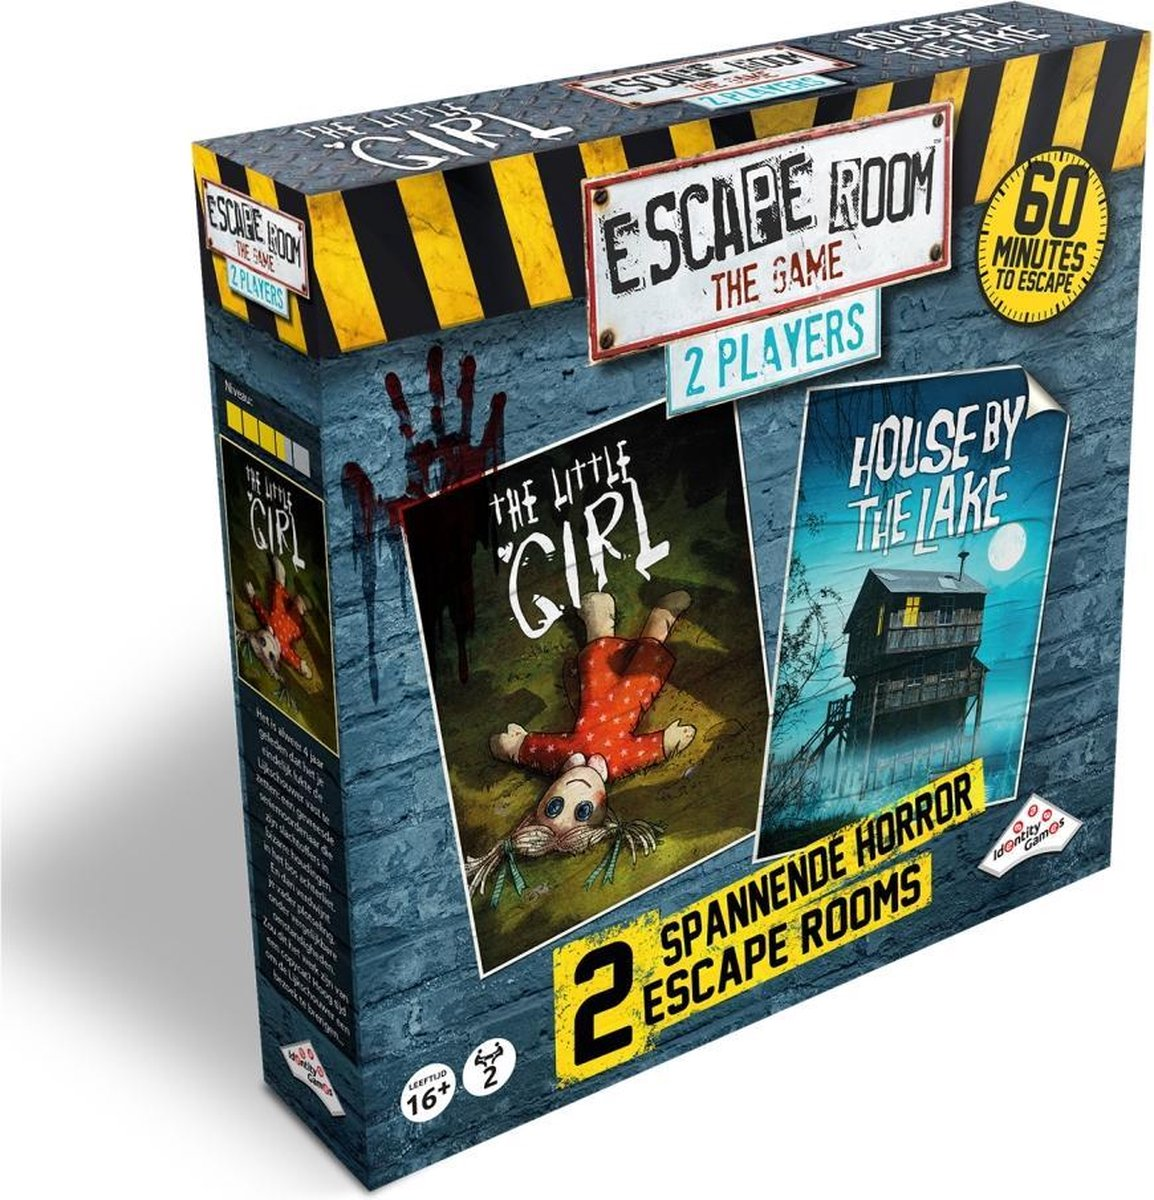 Idg-13803,Escape room the game 2 - players horror